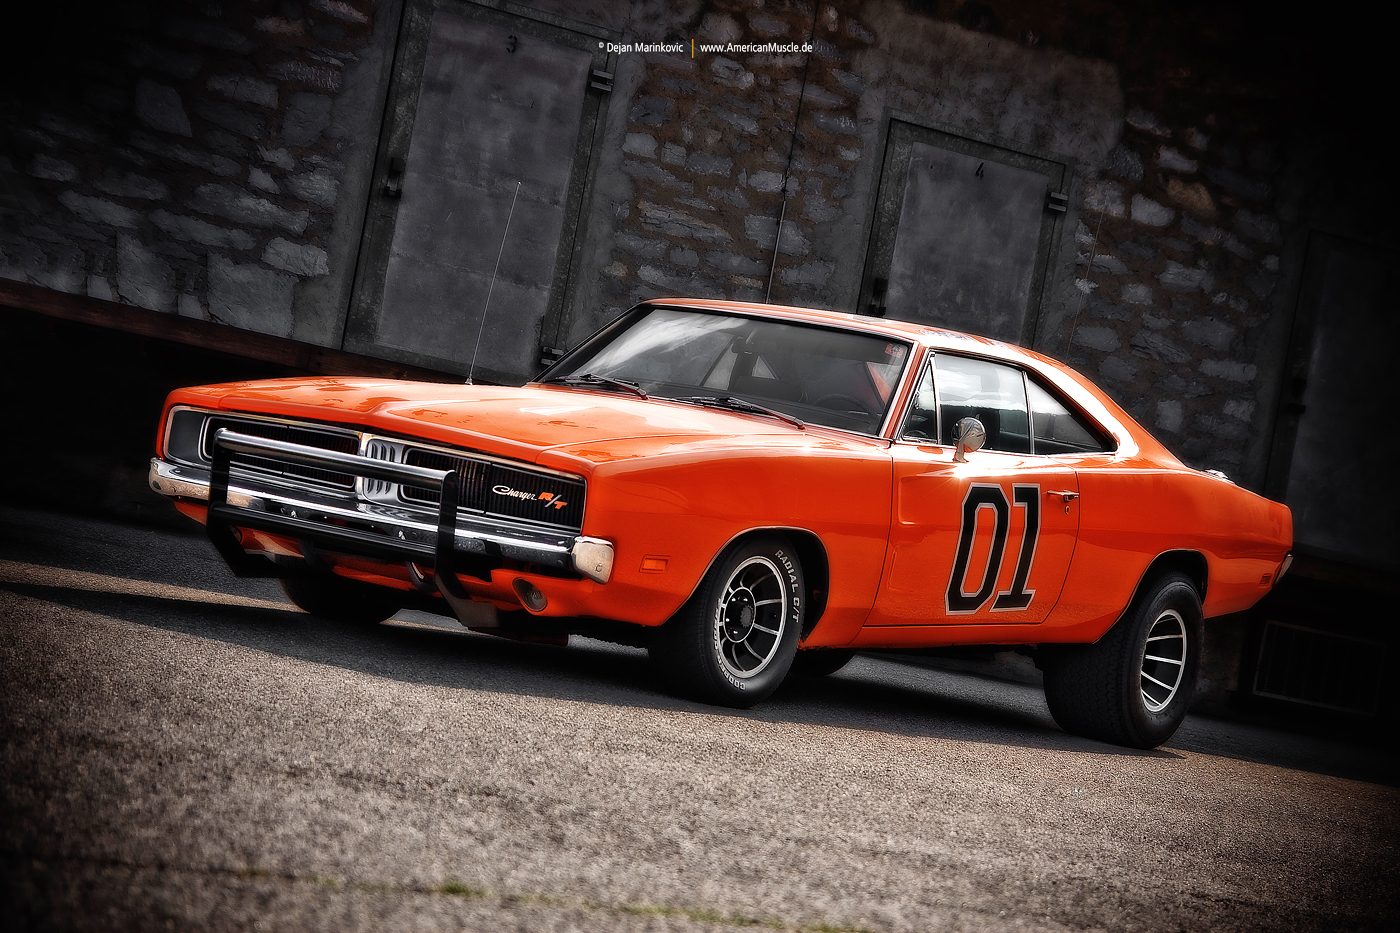 1969 Dodge Charger General Lee Classic Muscle Car For Sale: Extreme General Lee Charger By AmericanMuscle On DeviantArt